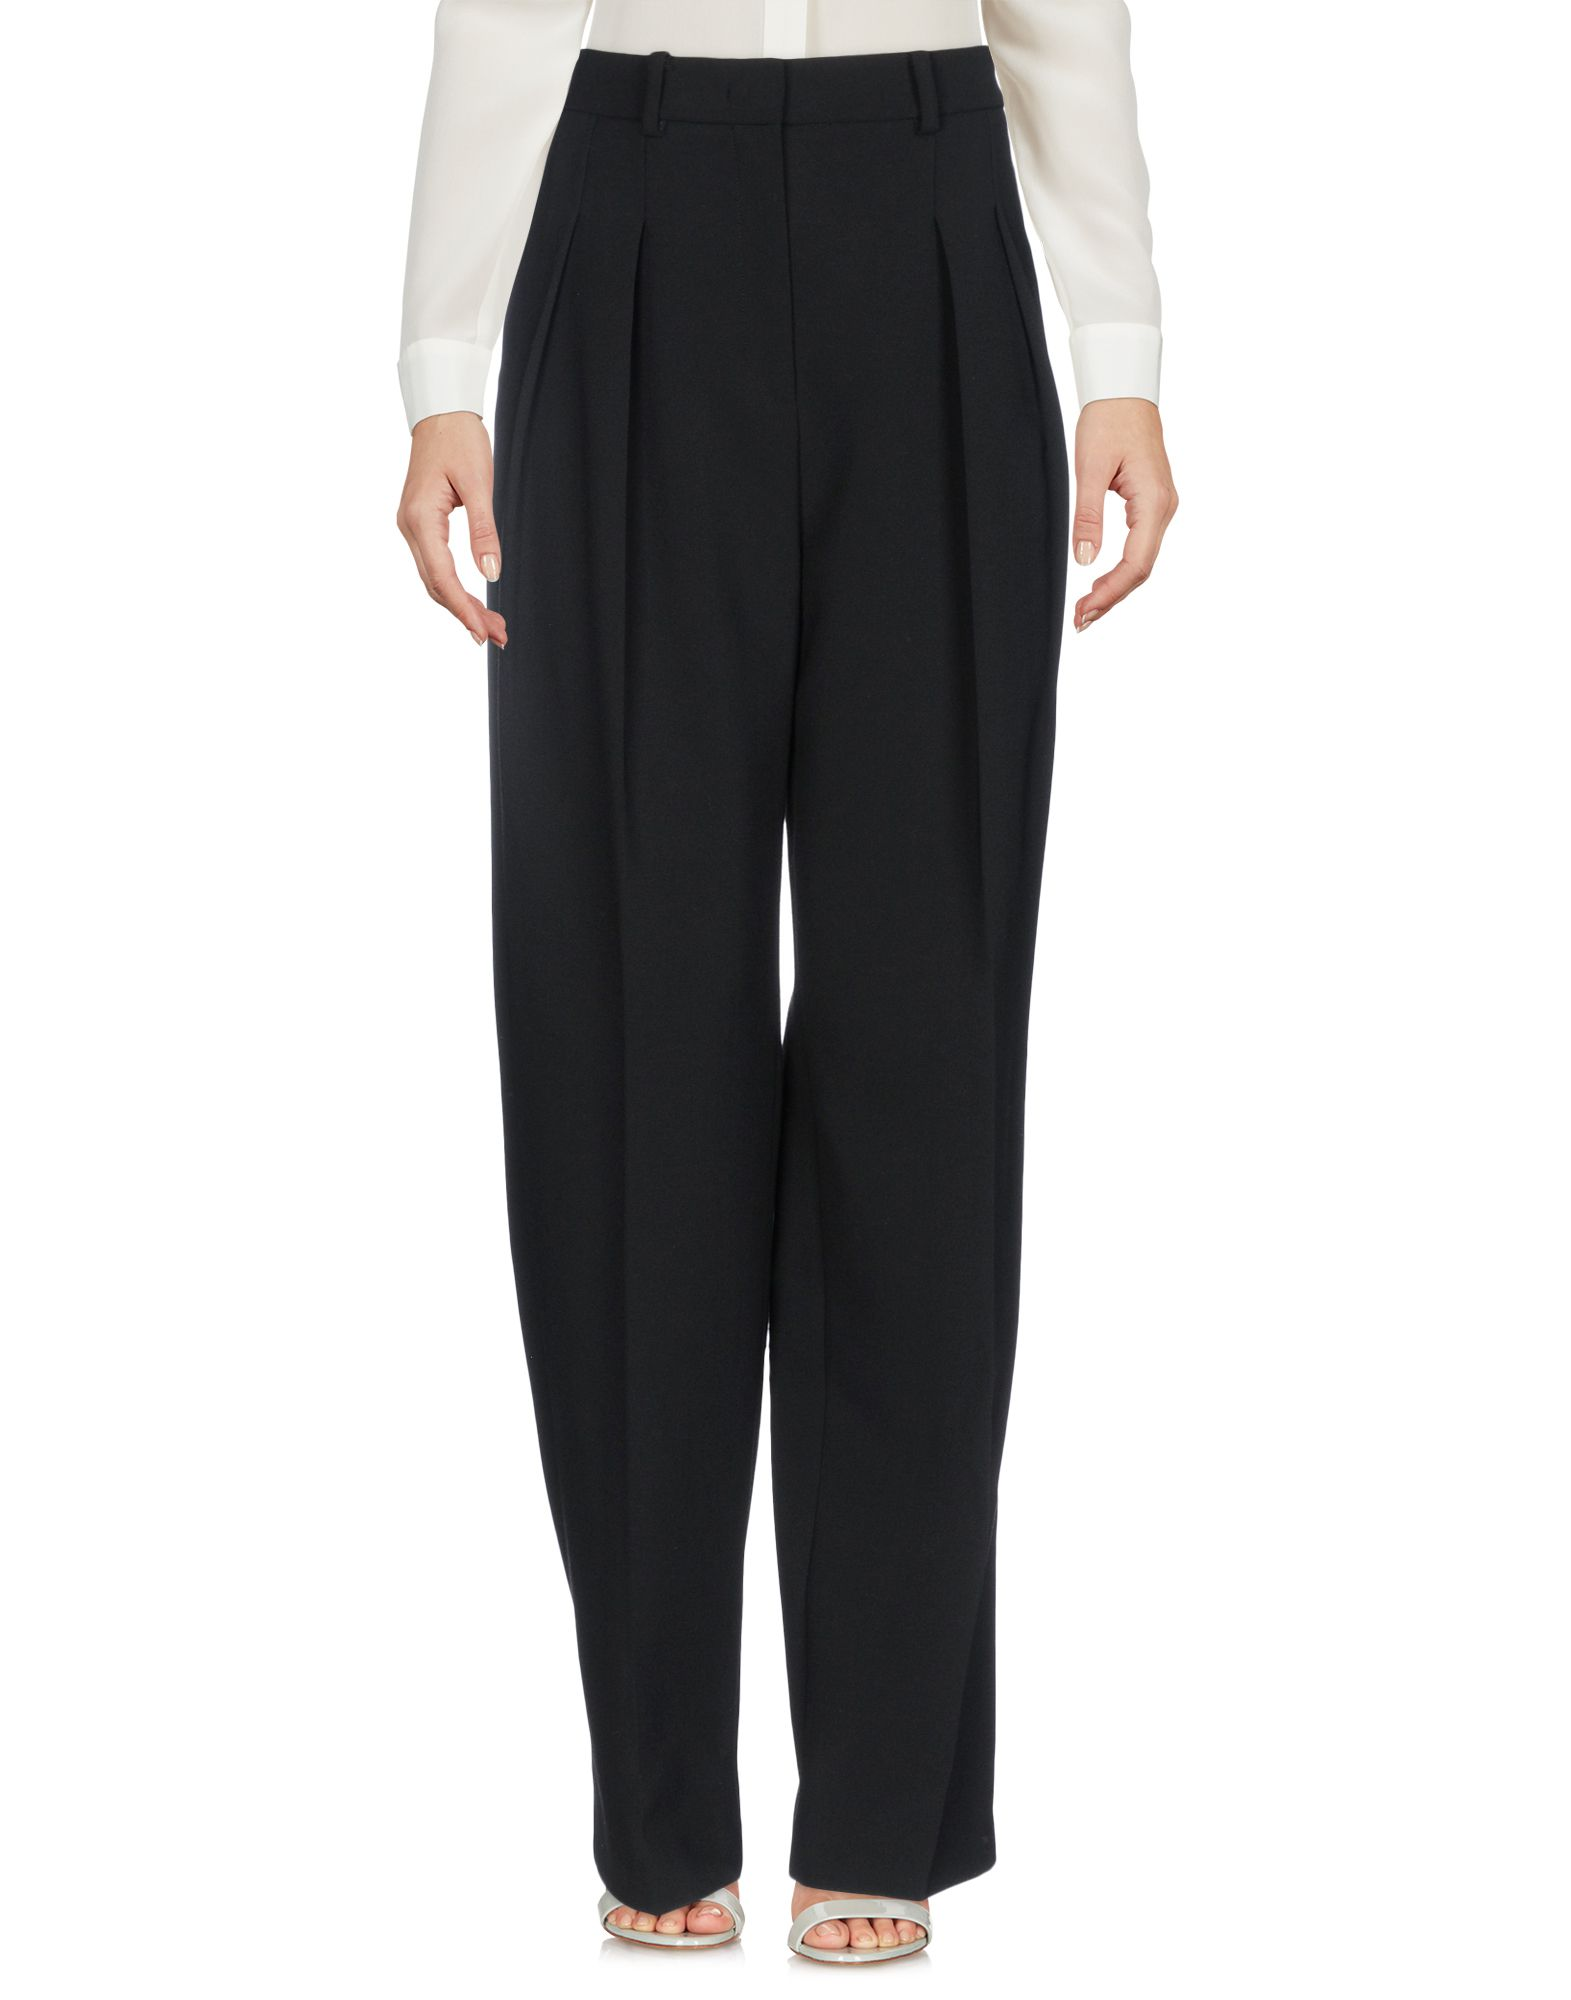 GILES Casual Pants in Black